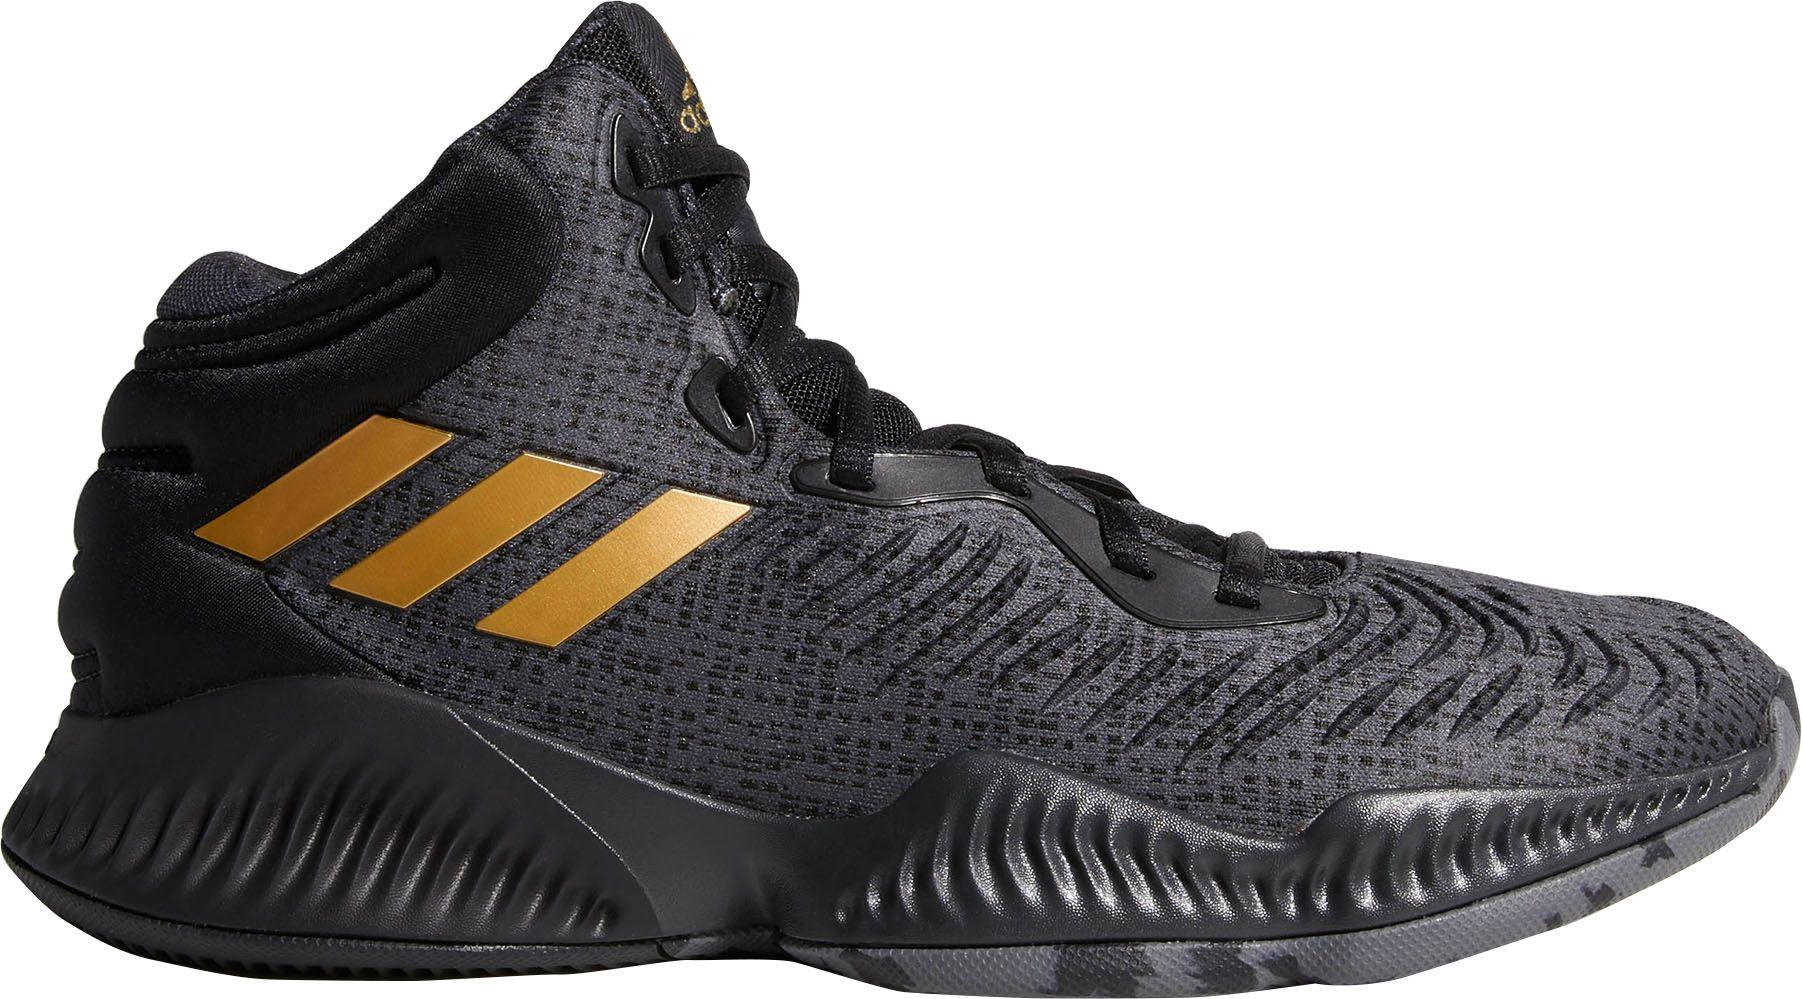 b5a97036451d55 Lyst - adidas Mad Bounce 2018 Basketball Shoes in Black for Men